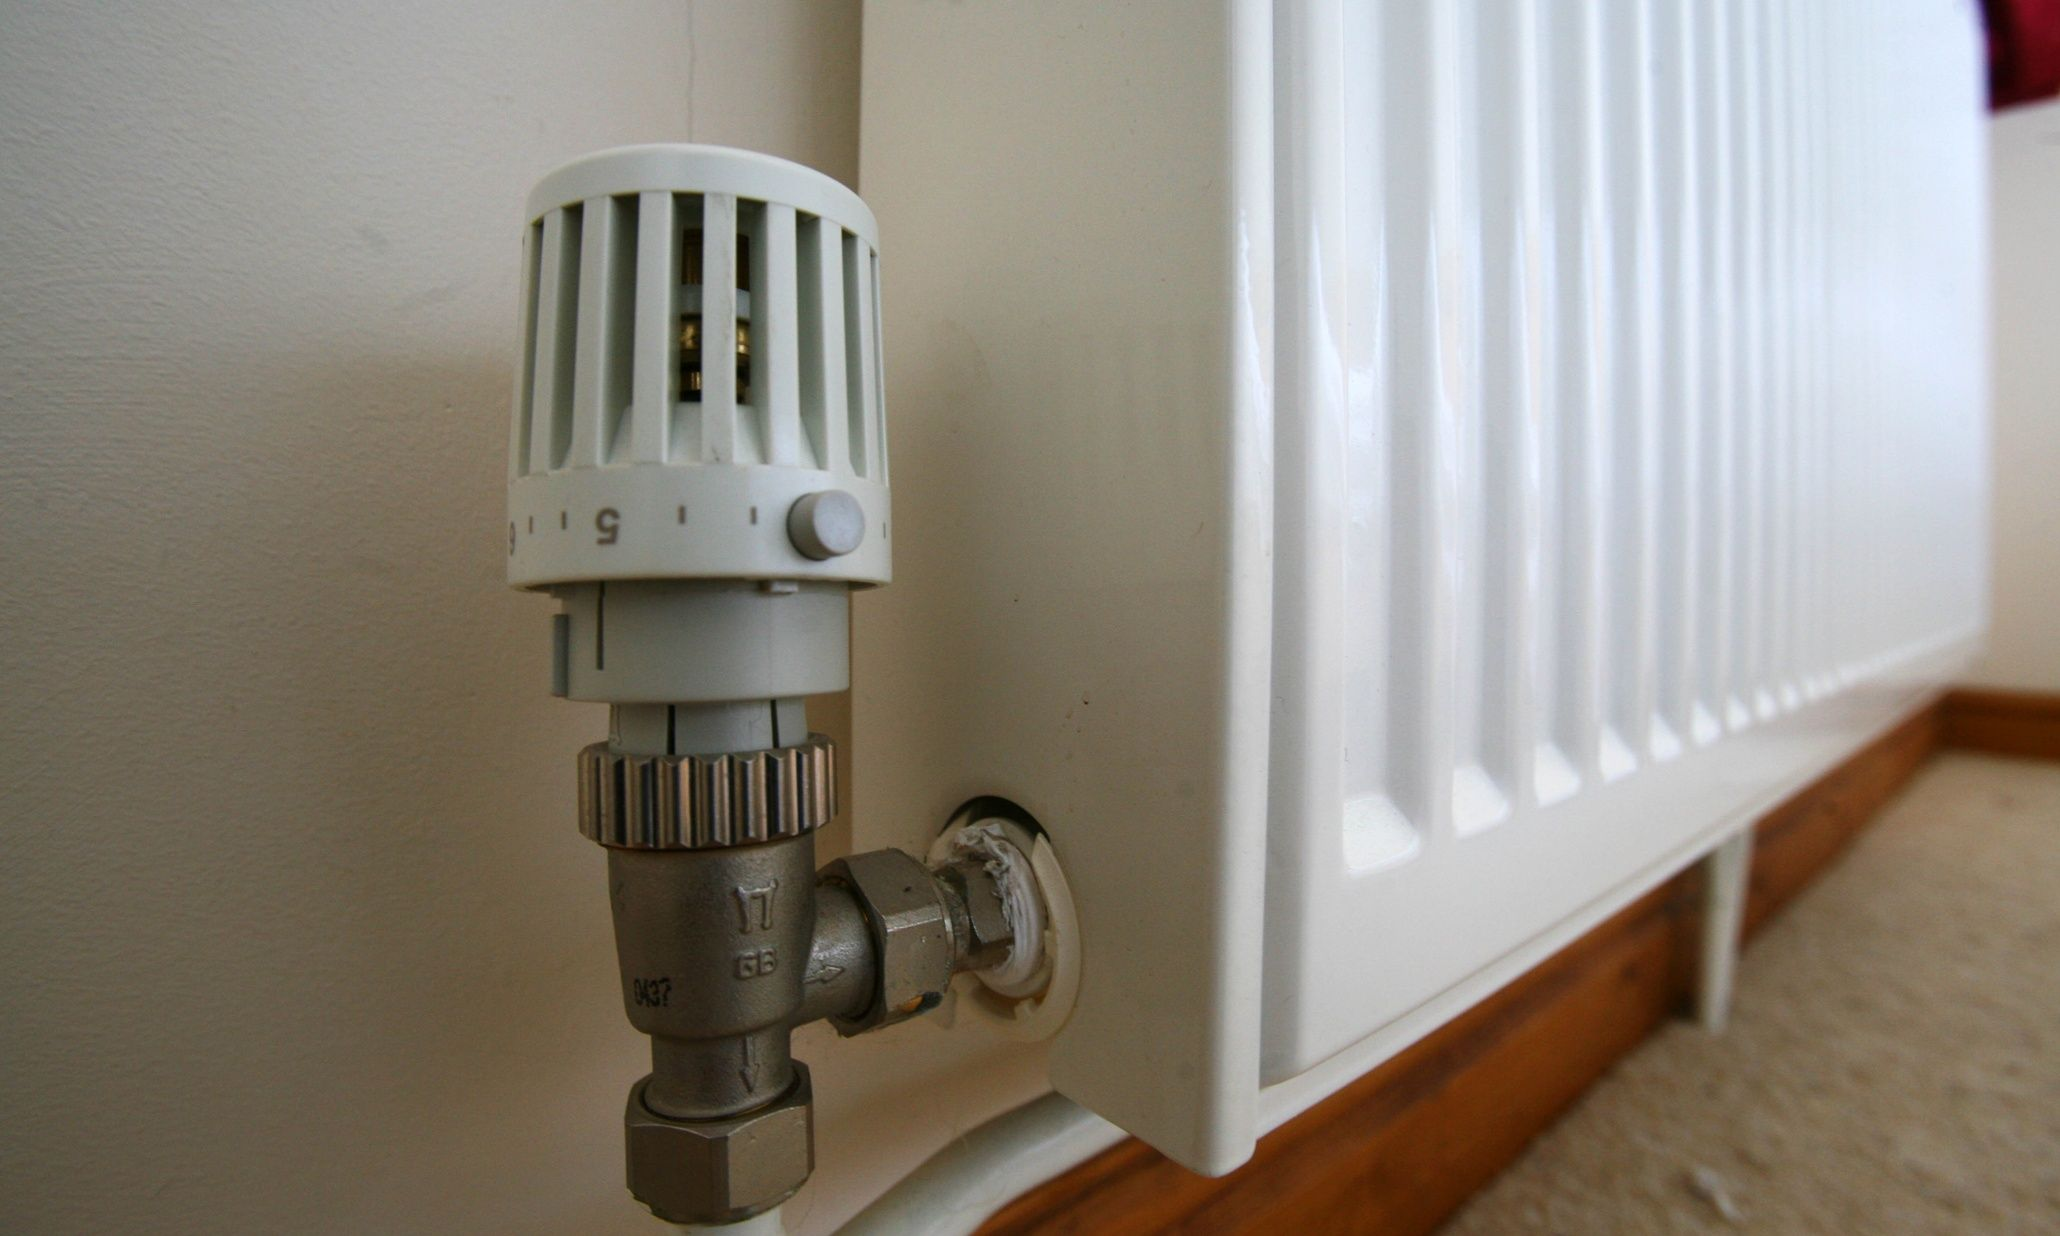 Hive Turns Up Central Heating Control With Smartphone App For Thermostats Central Heating Social Housing Heat Energy